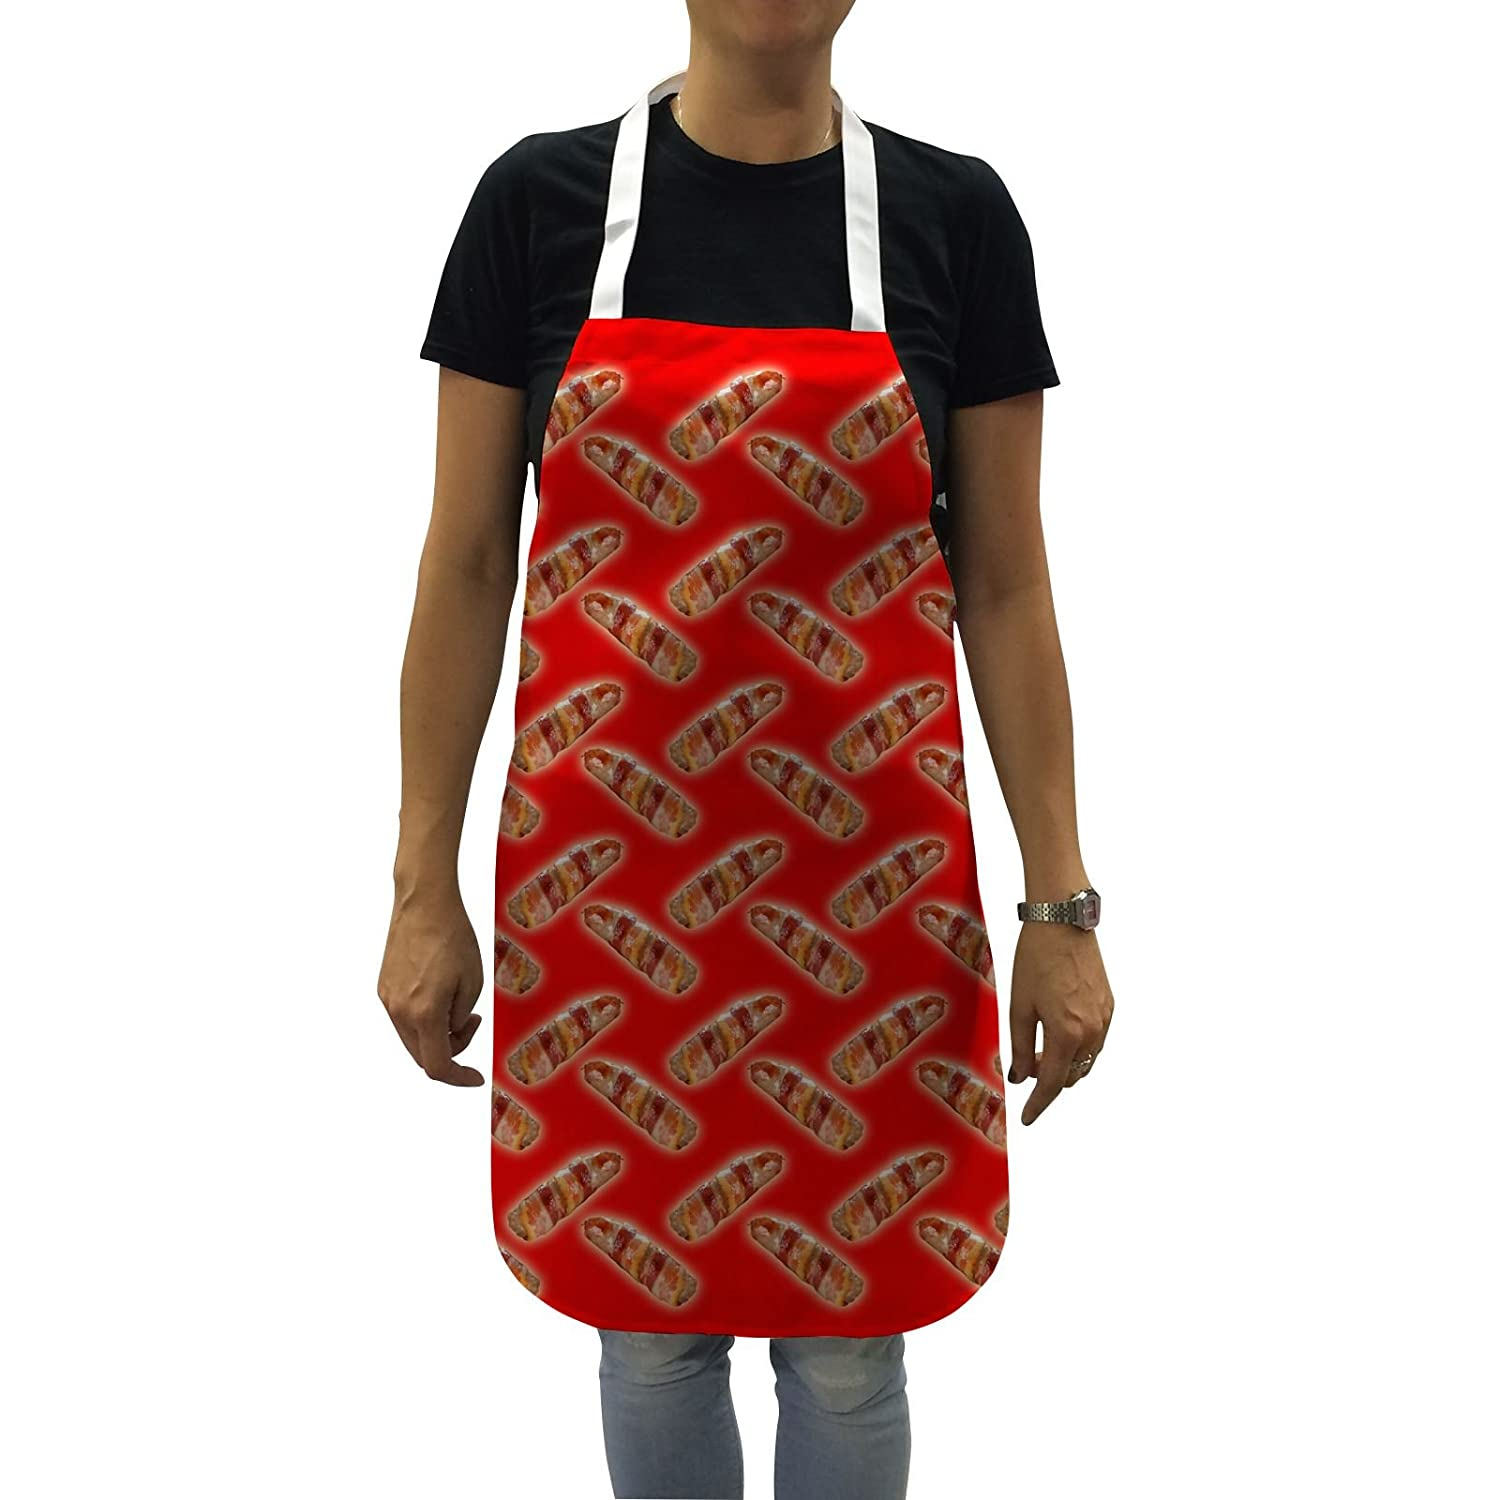 Funny Aprons for Women Pigs in Blankets Baking Gifts Kitchen Apron Cooking Chefs Bang Tidy Clothing